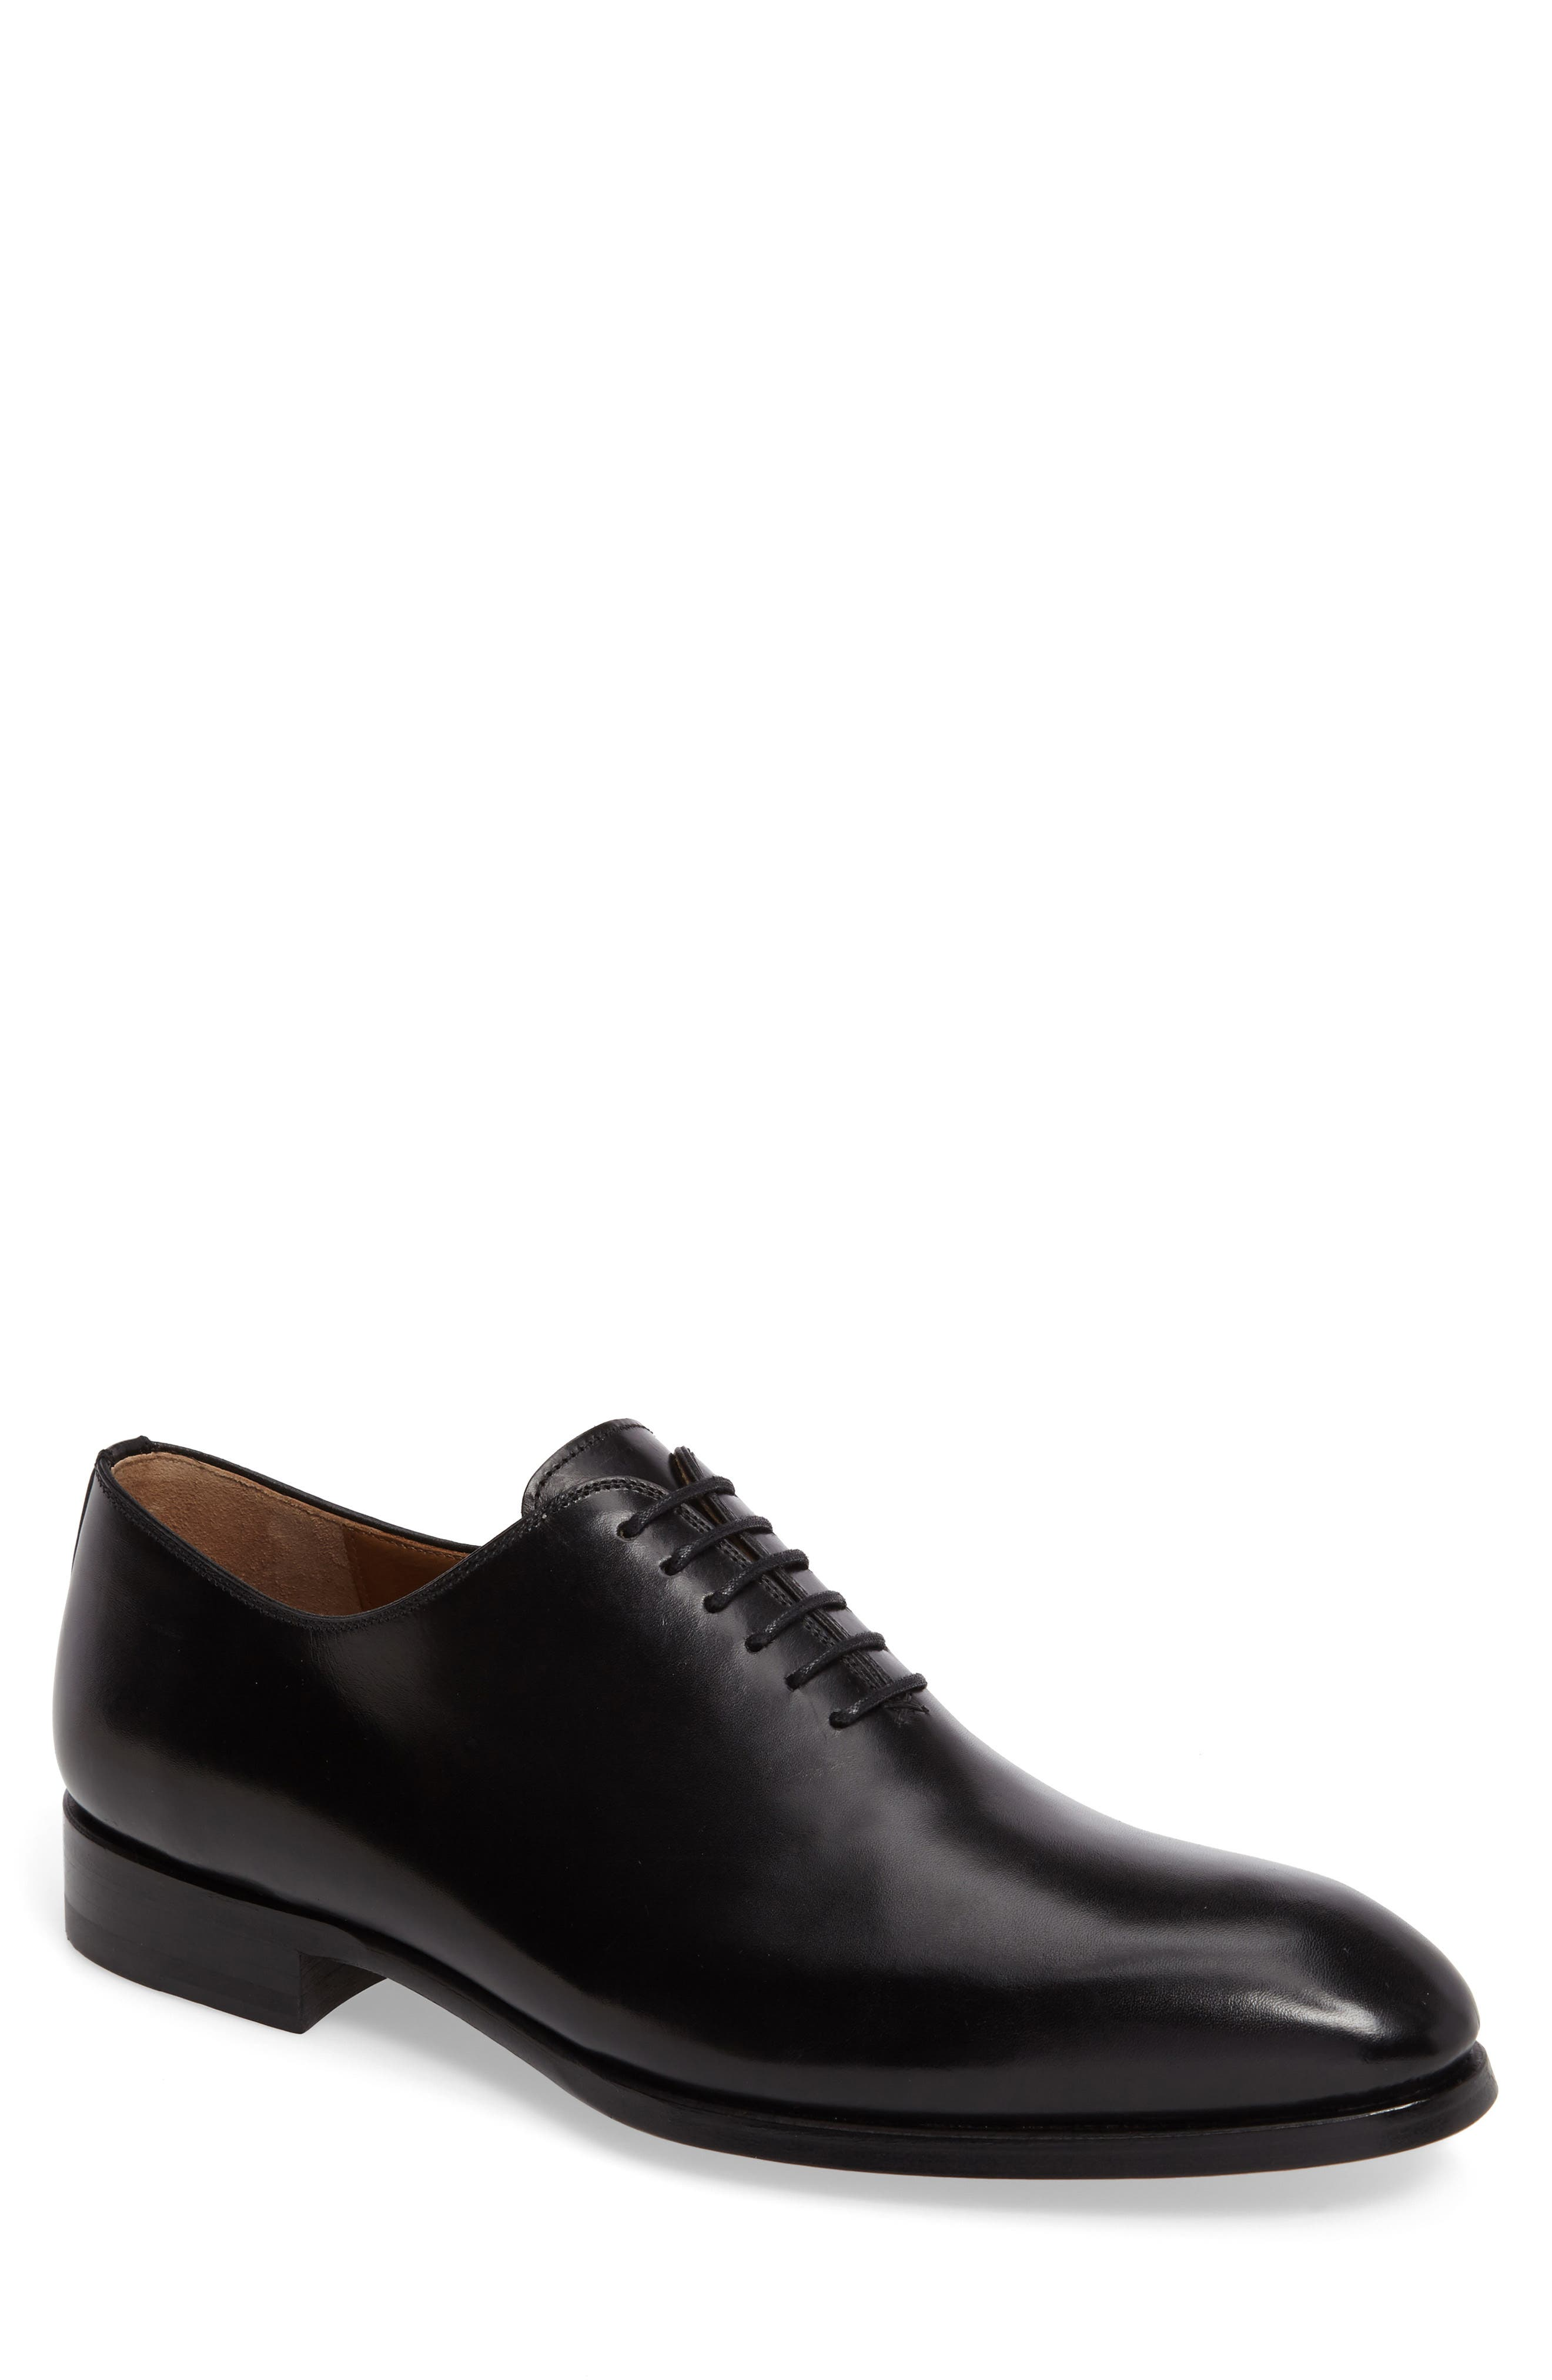 Montay Wholecut Oxford by Magnanni